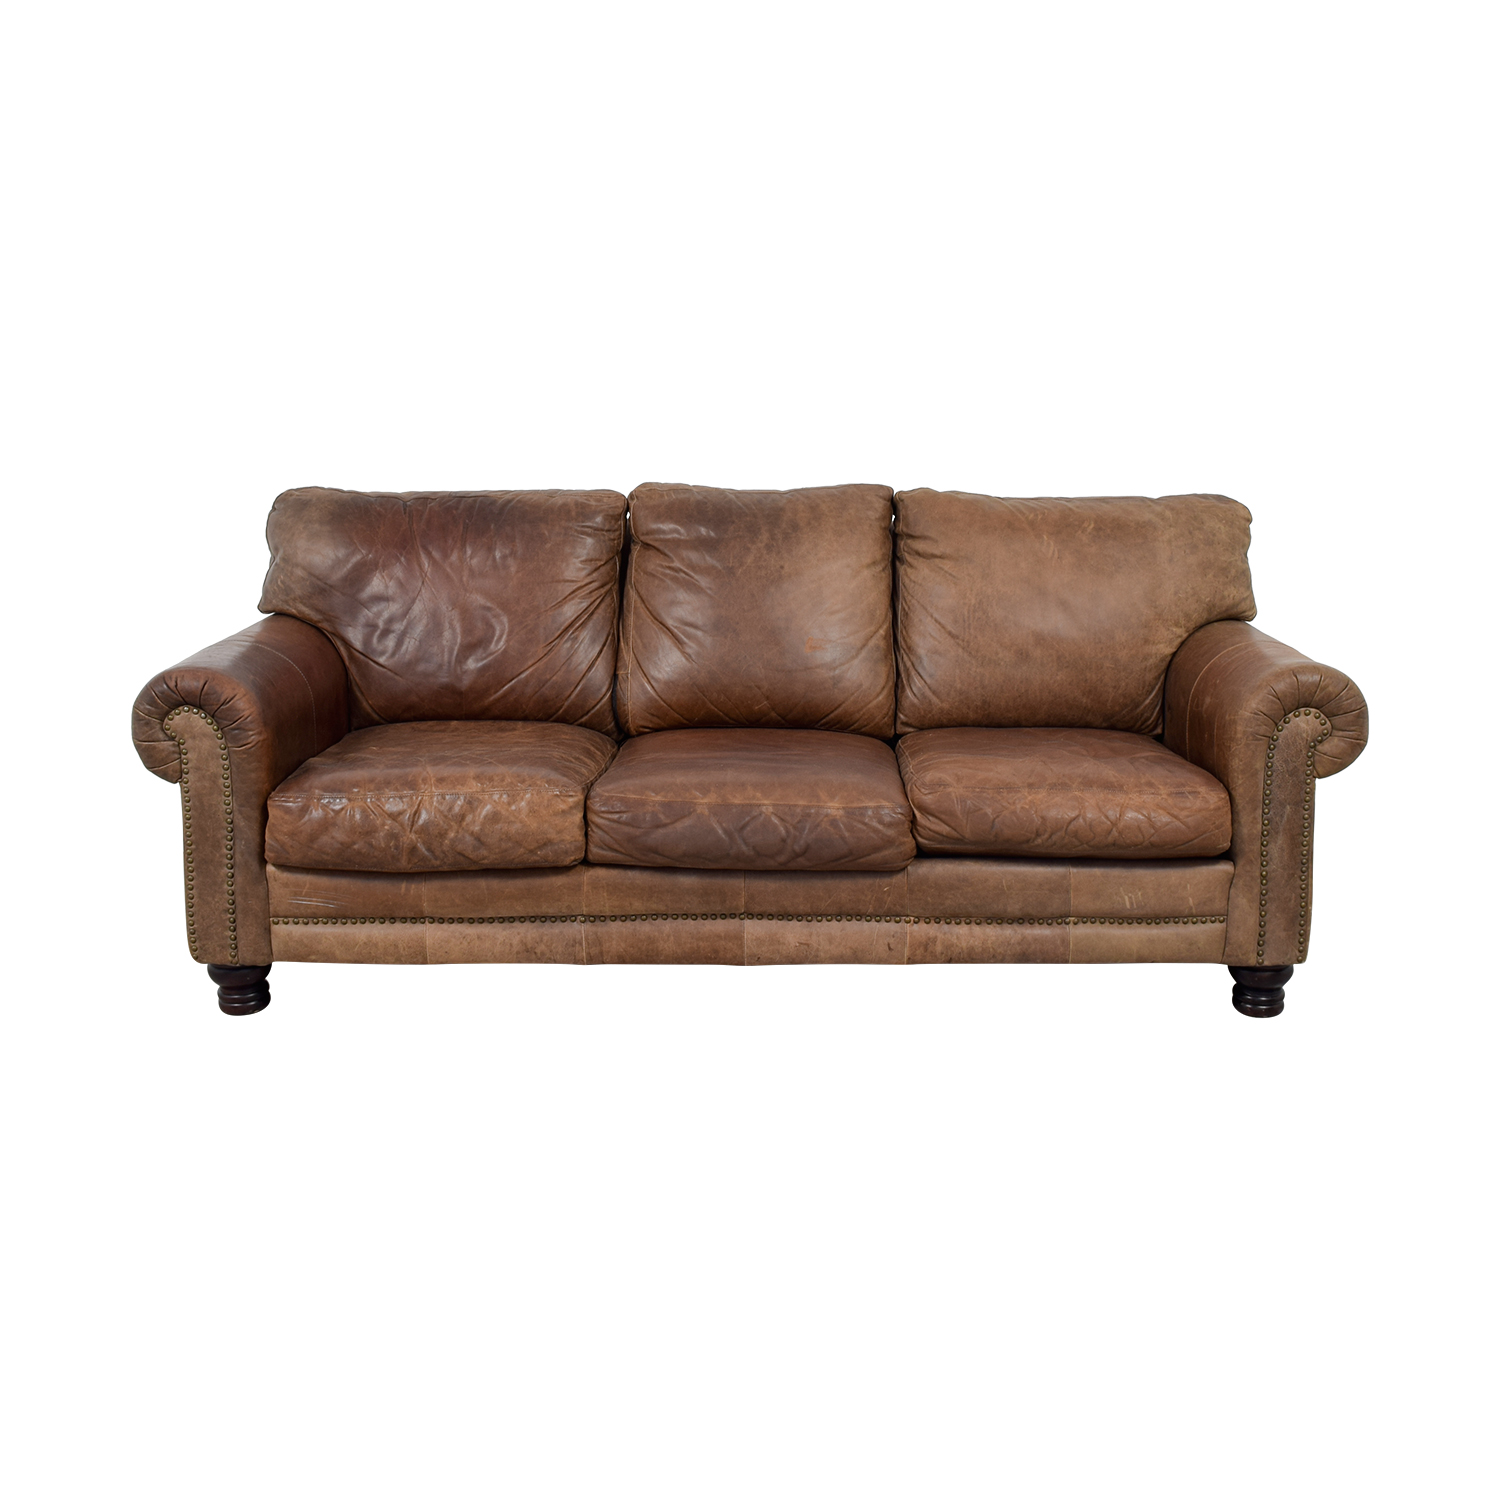 Leather Sofa La Z Boy 53 Off La Z Boy La Z Boy Three Cushion Brown Leather Couch Sofas